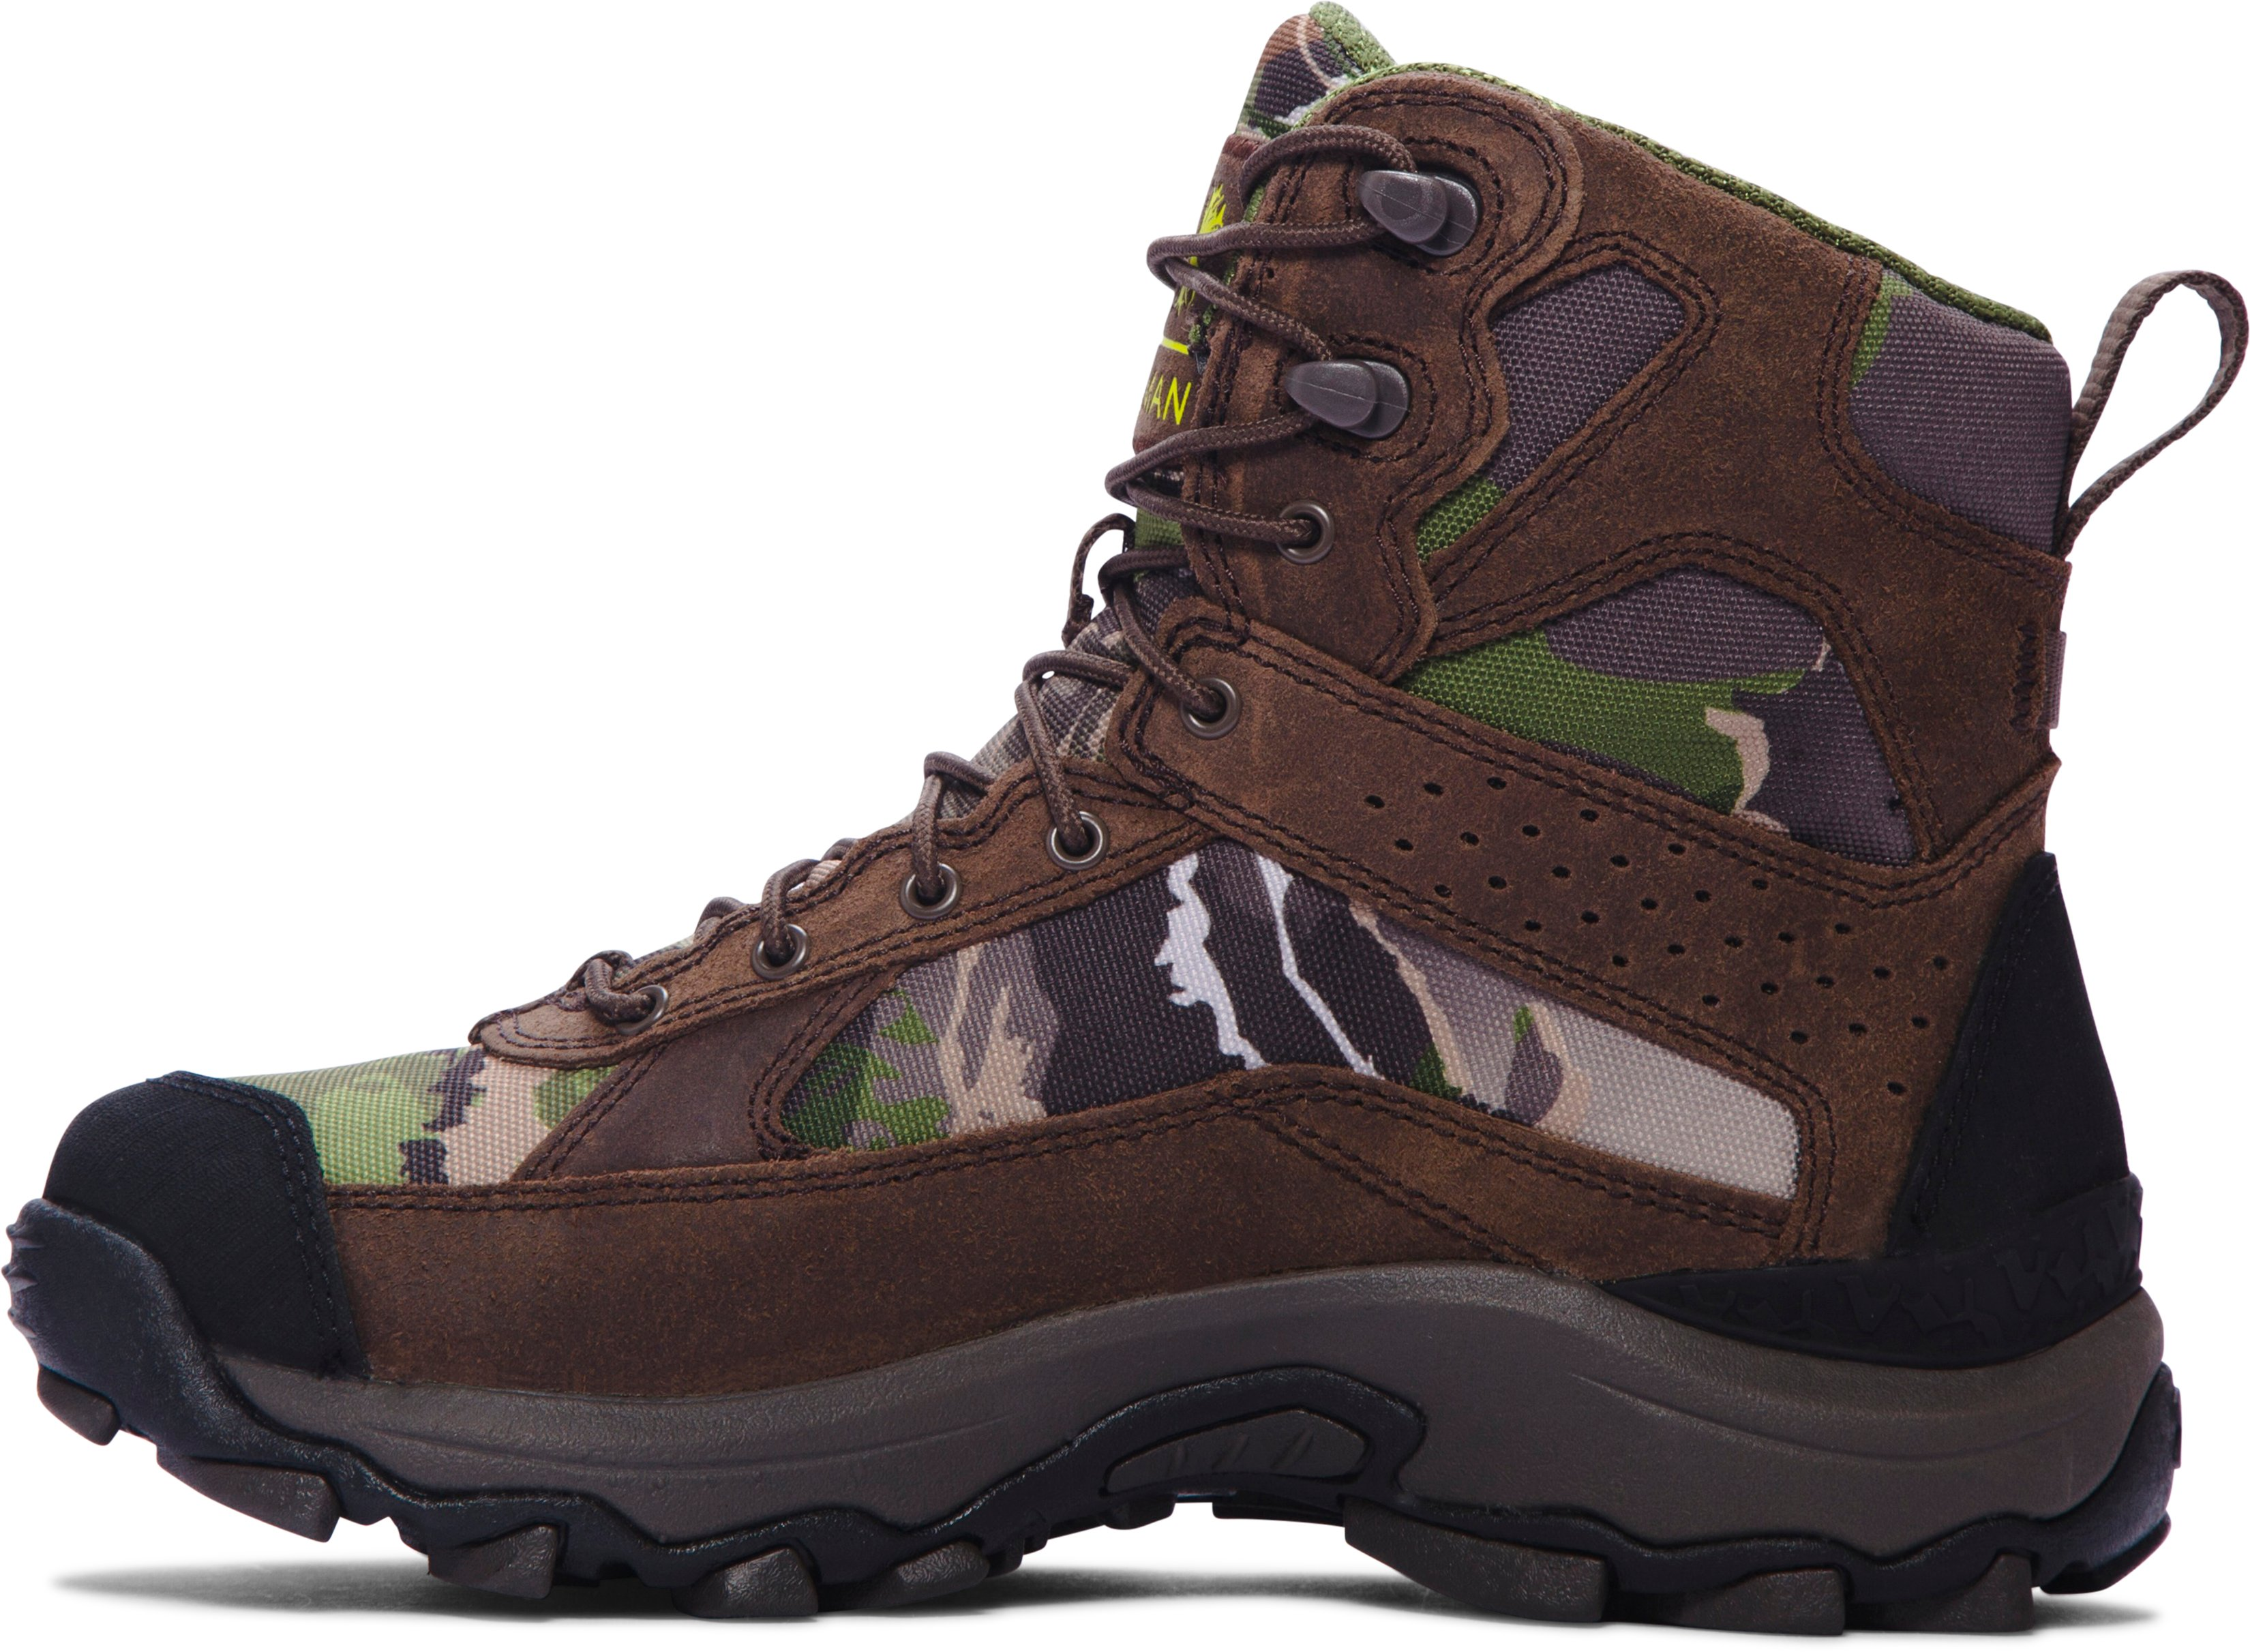 Boys' UA Speed Freek Bozeman Hunting Boots, RIDGE REAPER® FOREST,